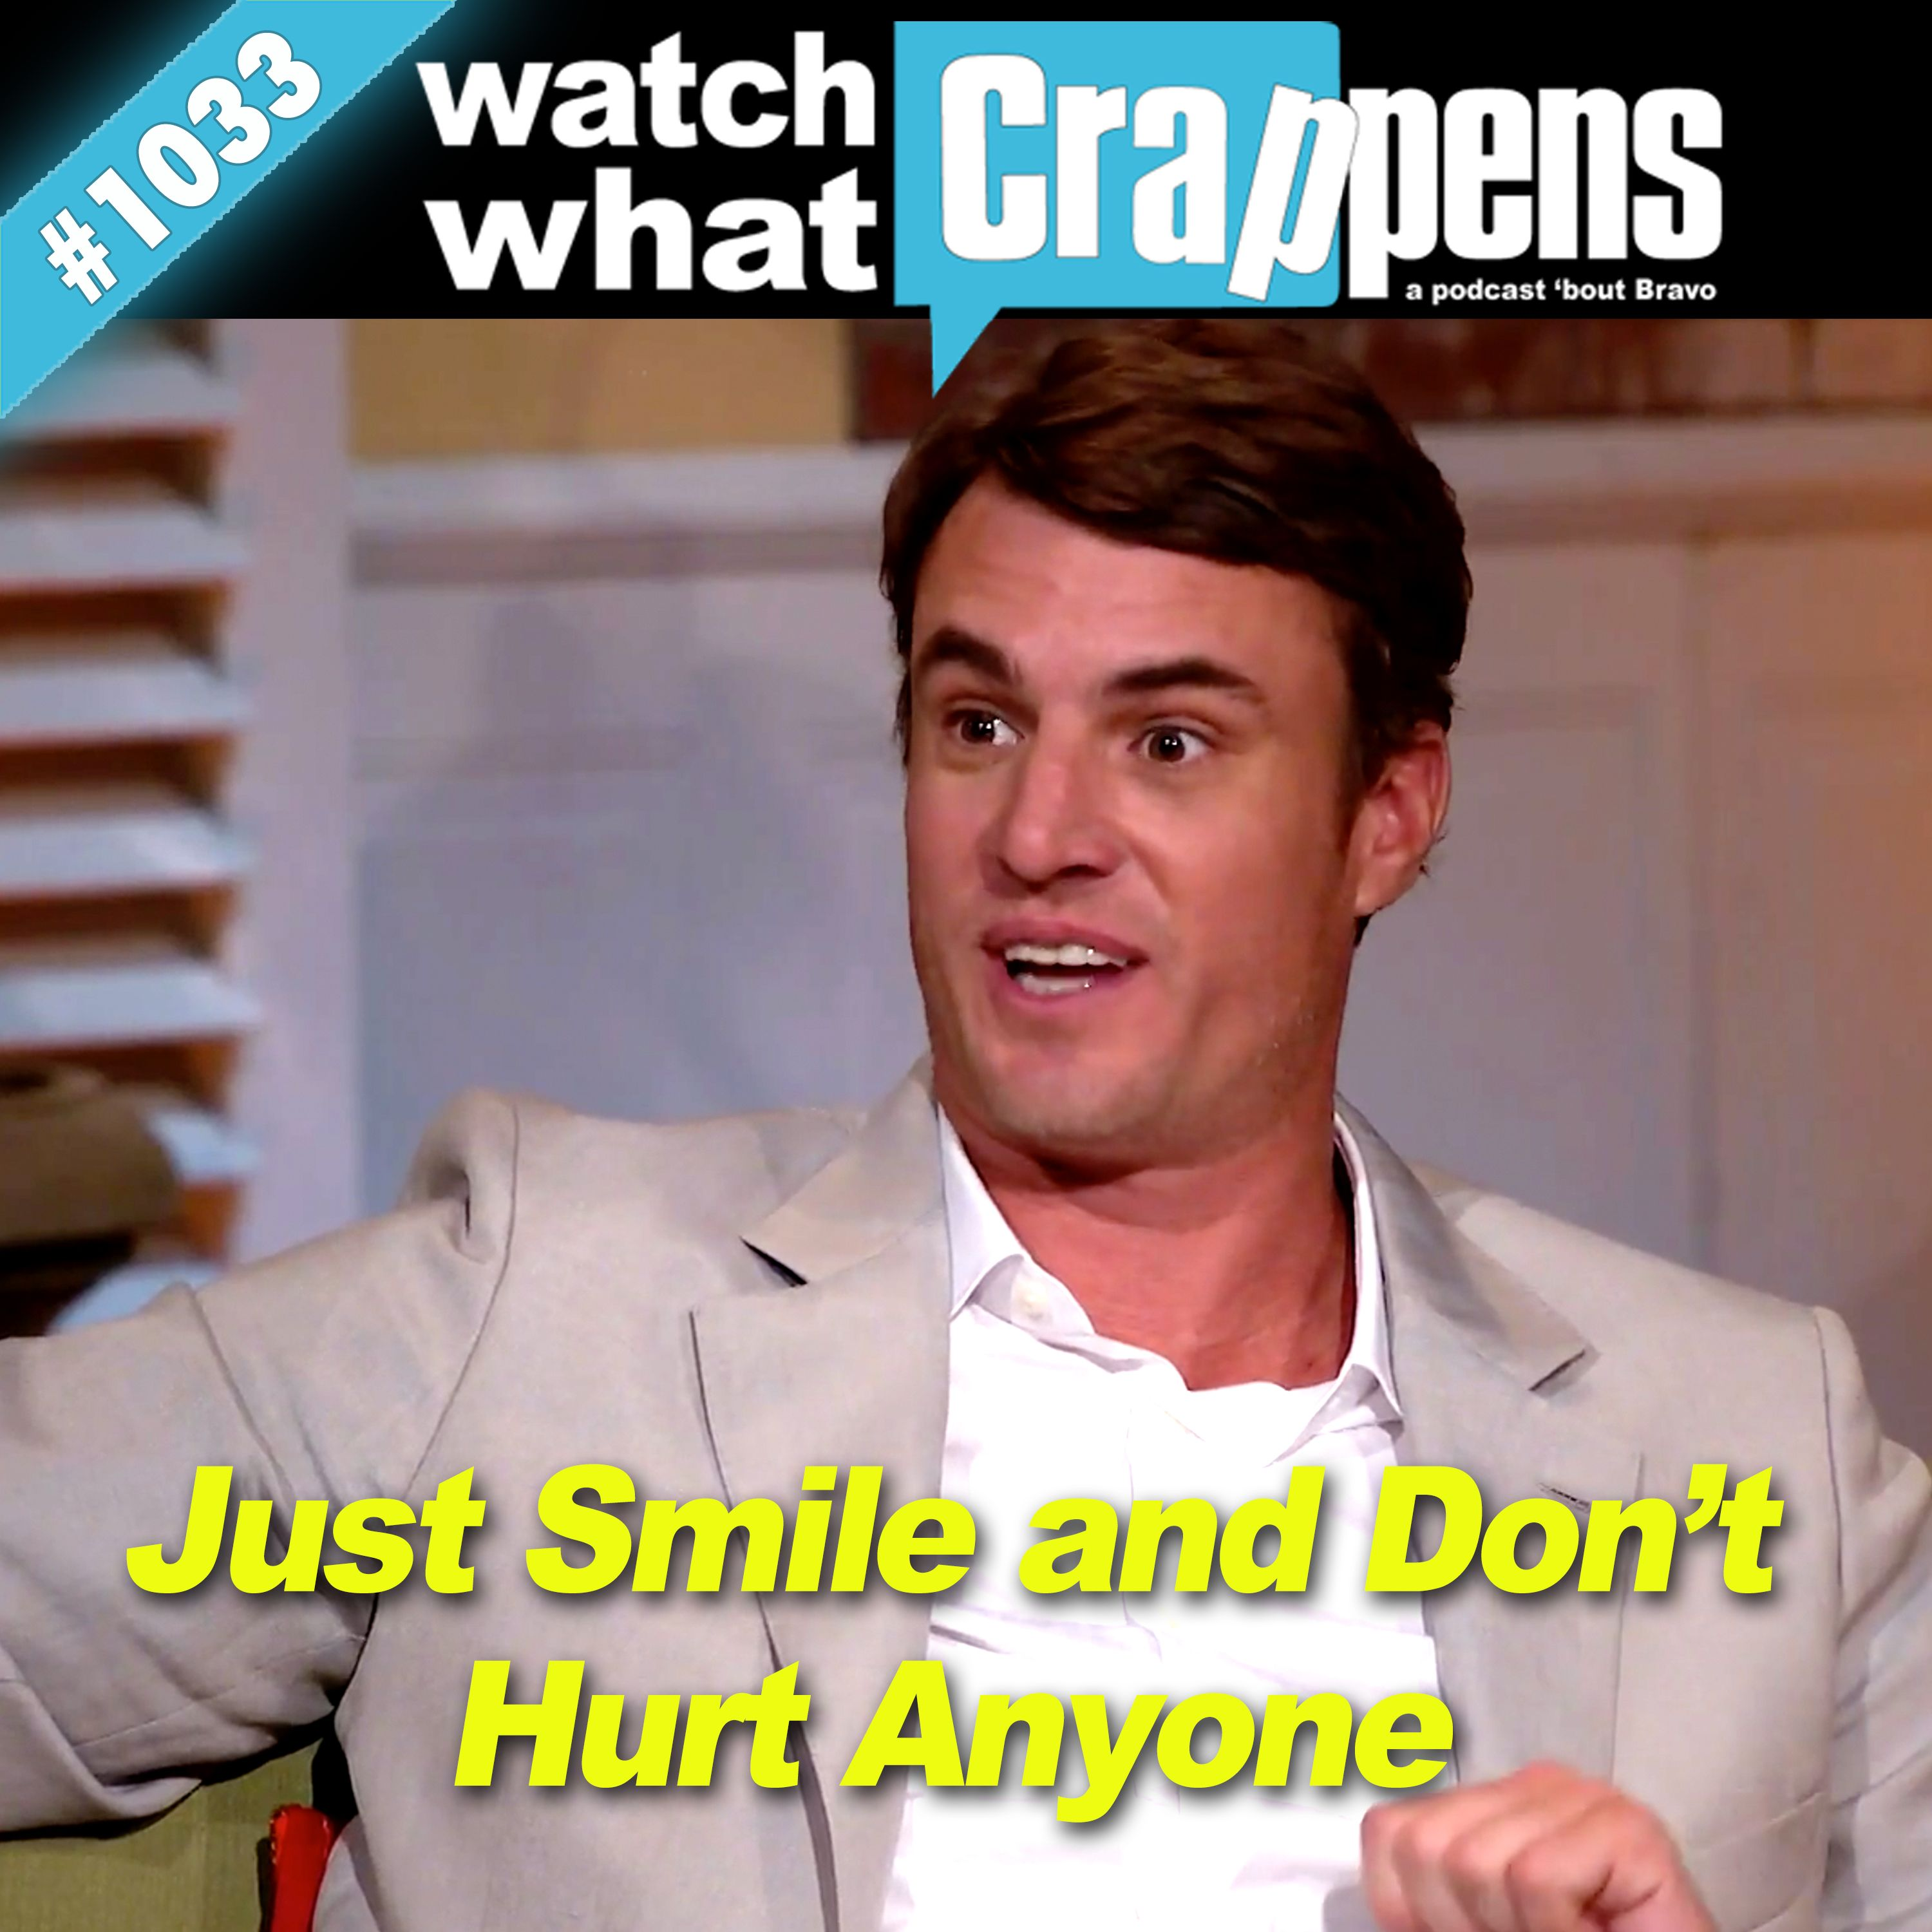 #1033 SouthernCharm: Just Smile and Don't Hurt Anyone